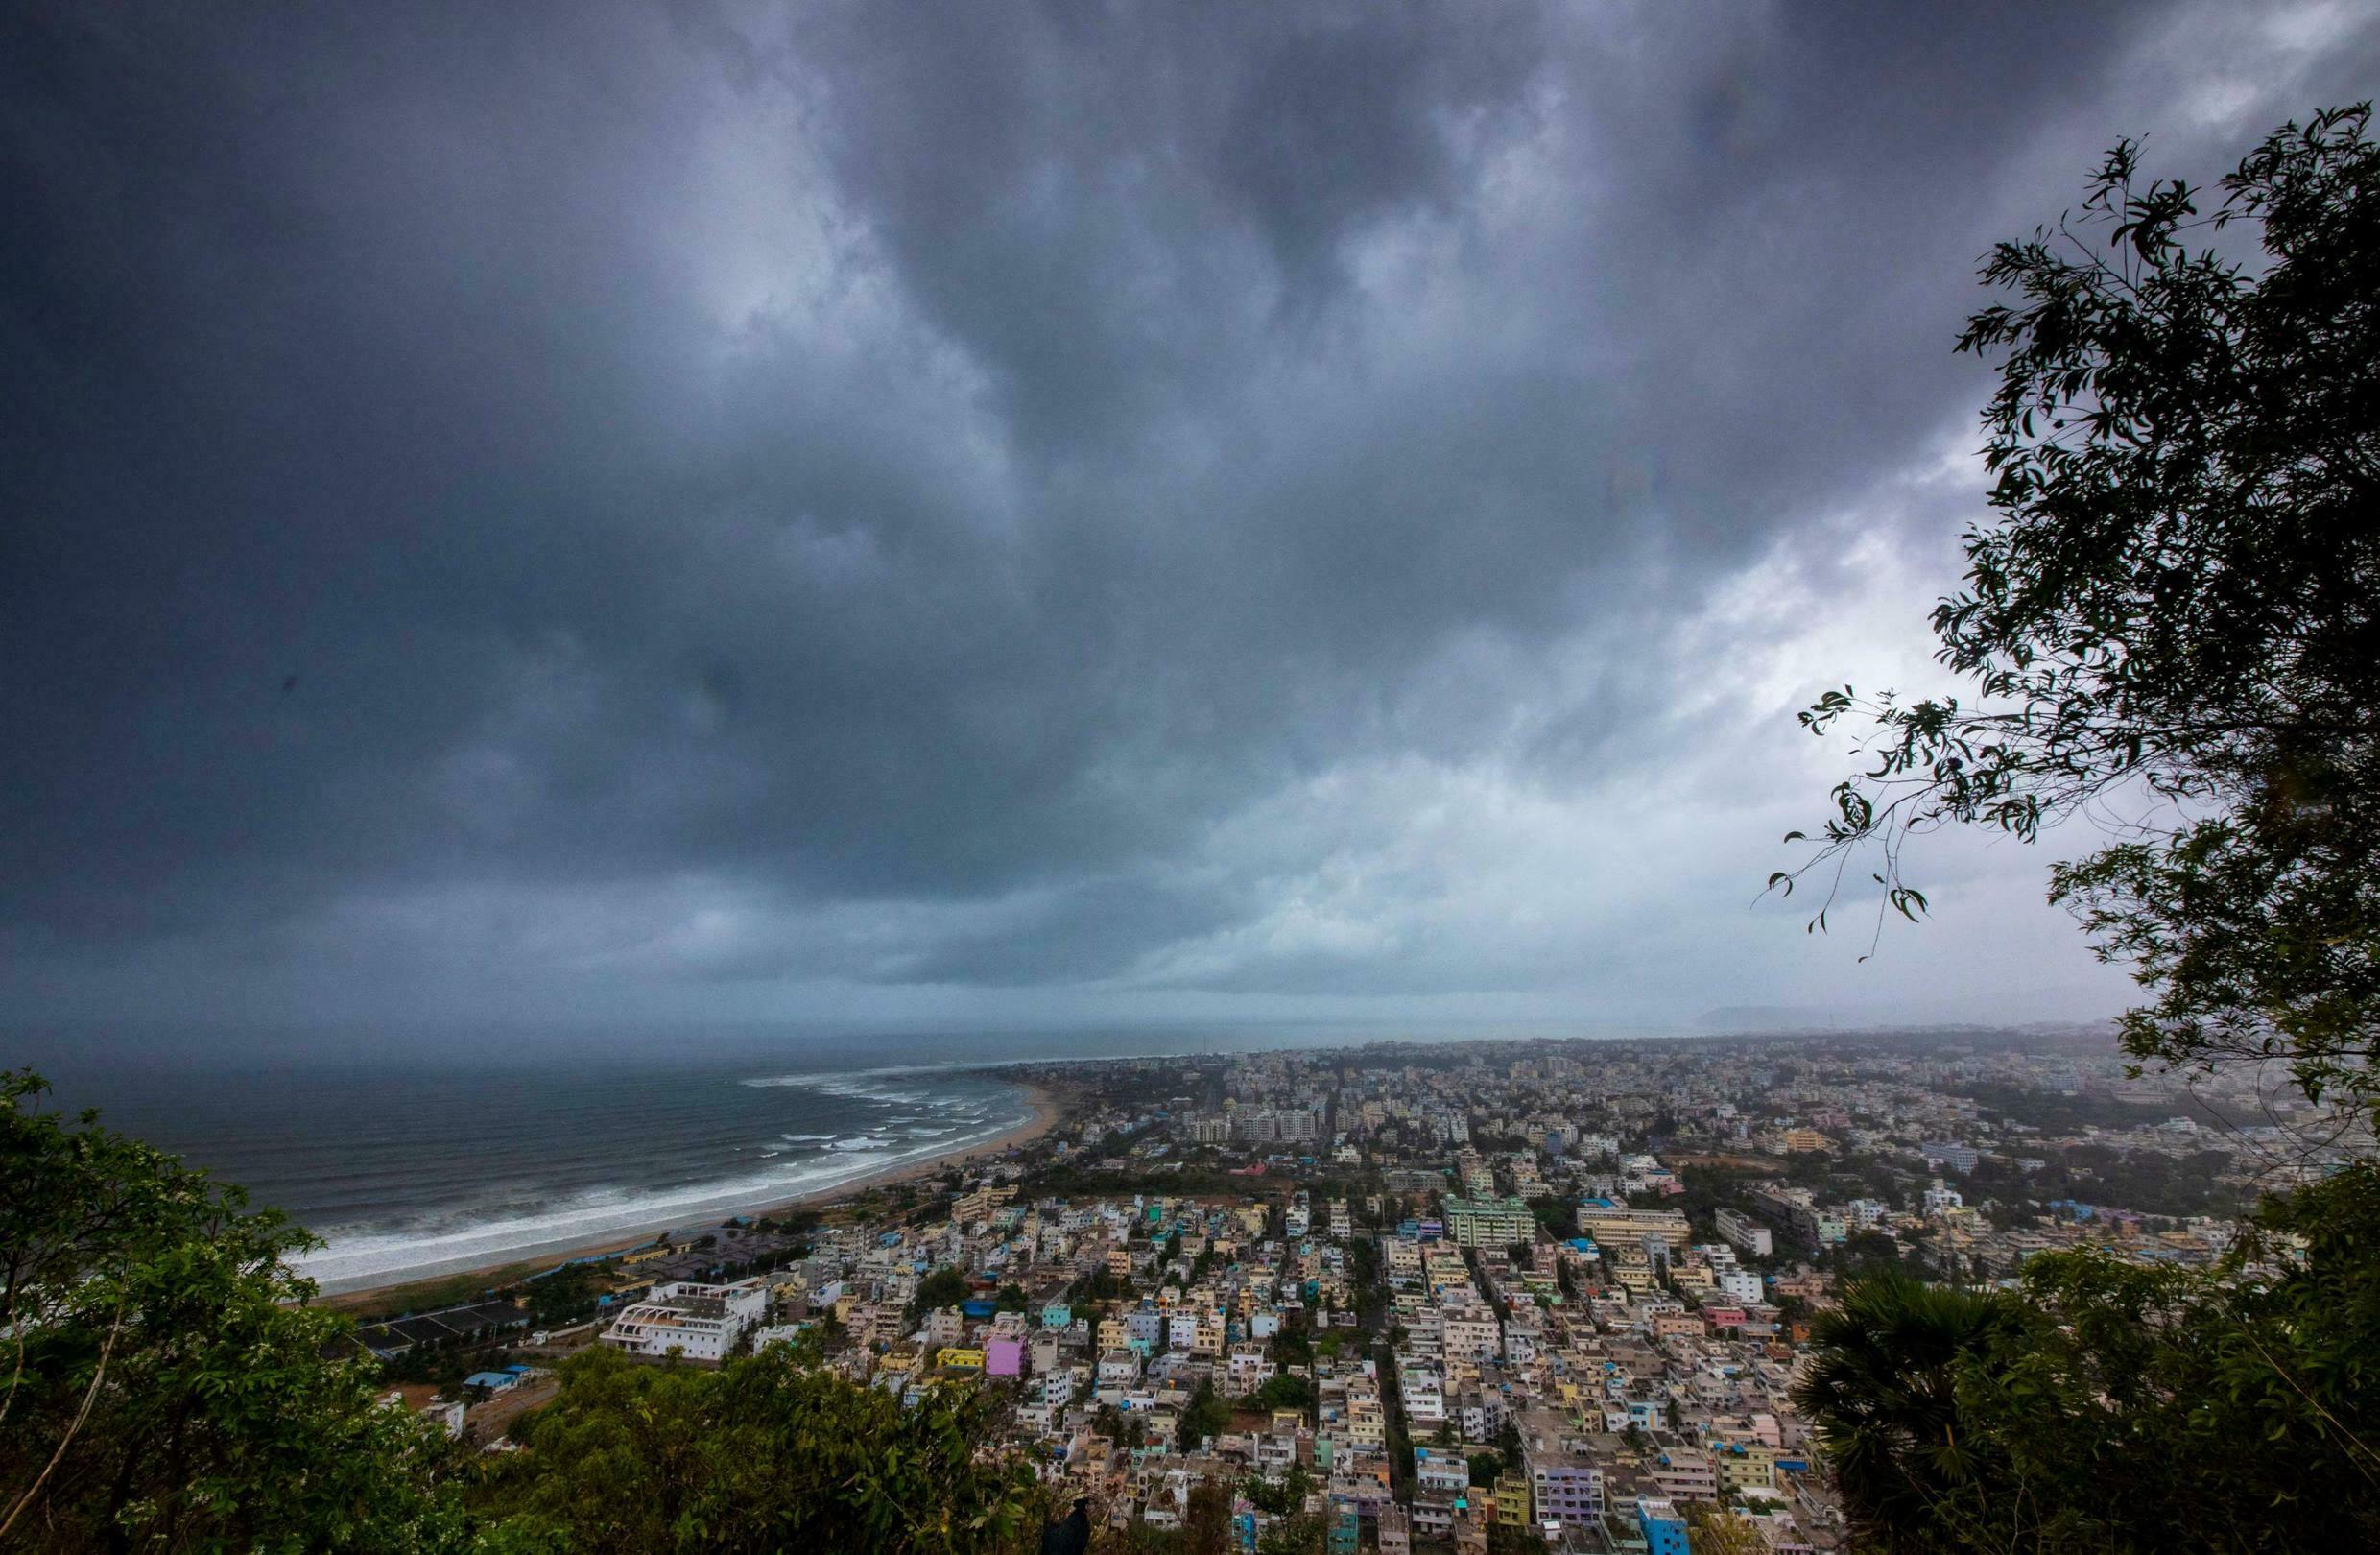 Clouds loom ahead of cyclone Fani in Visakhapatnam, India, May 1, 2019.